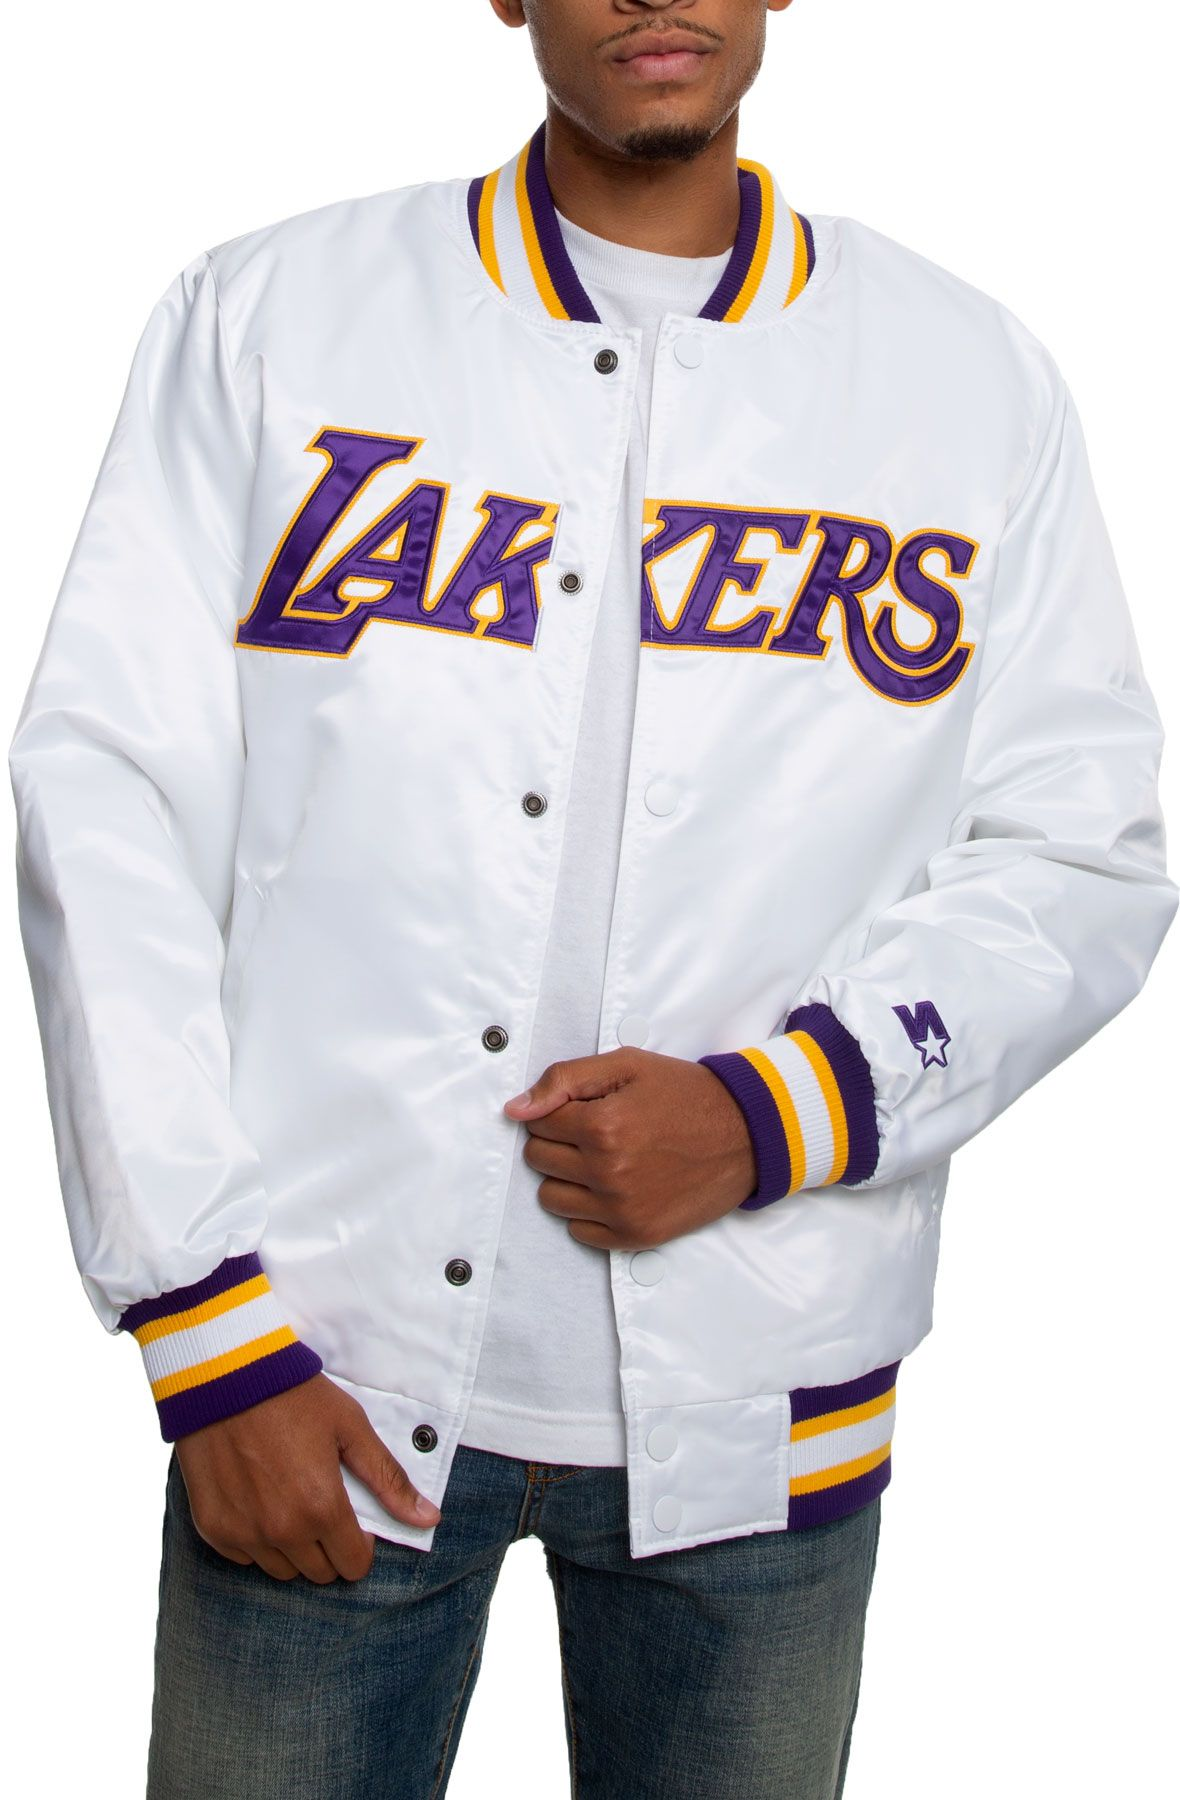 Lakers College Jacke aus den USA